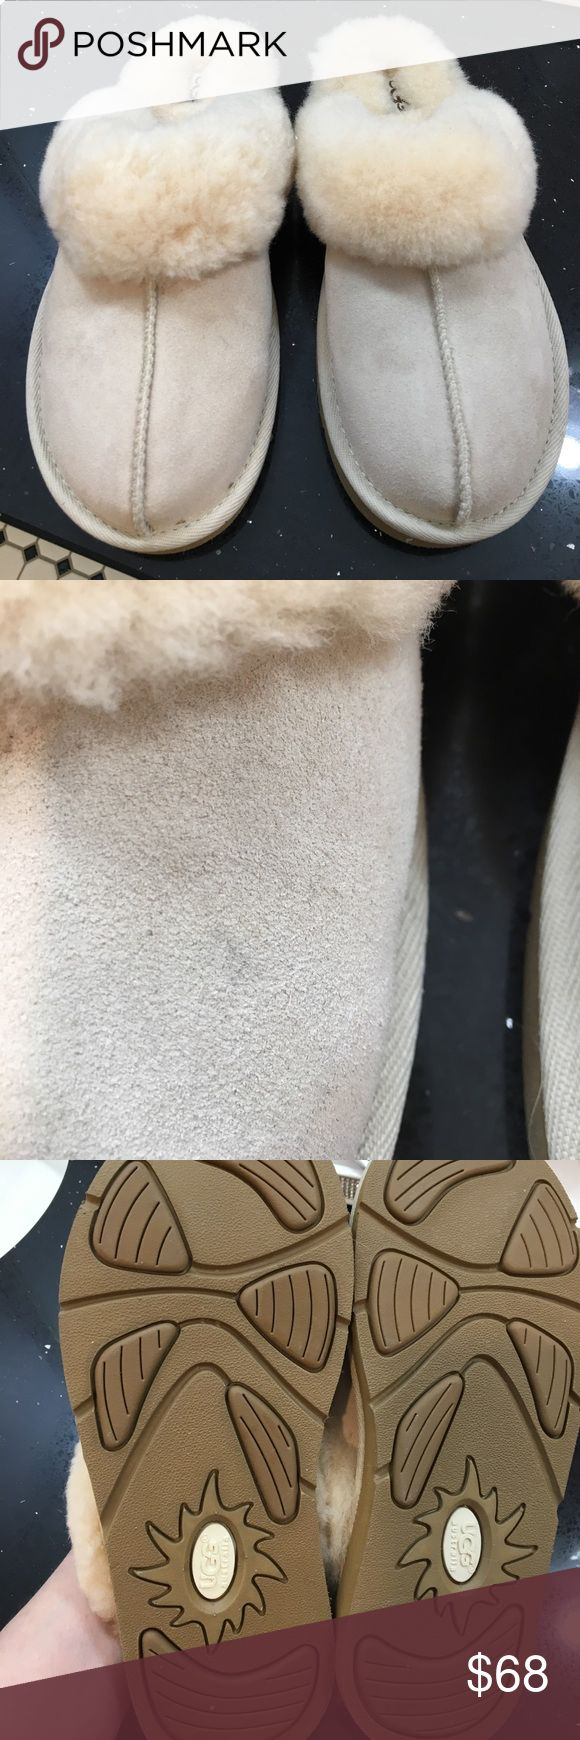 NWOT Ugg Shoes. Light tan color. Never worn. Upper leather. Lining sheepskin. Rubber soles. Can be worn outside. Little mark on right shoe shown in pic. UGG Shoes